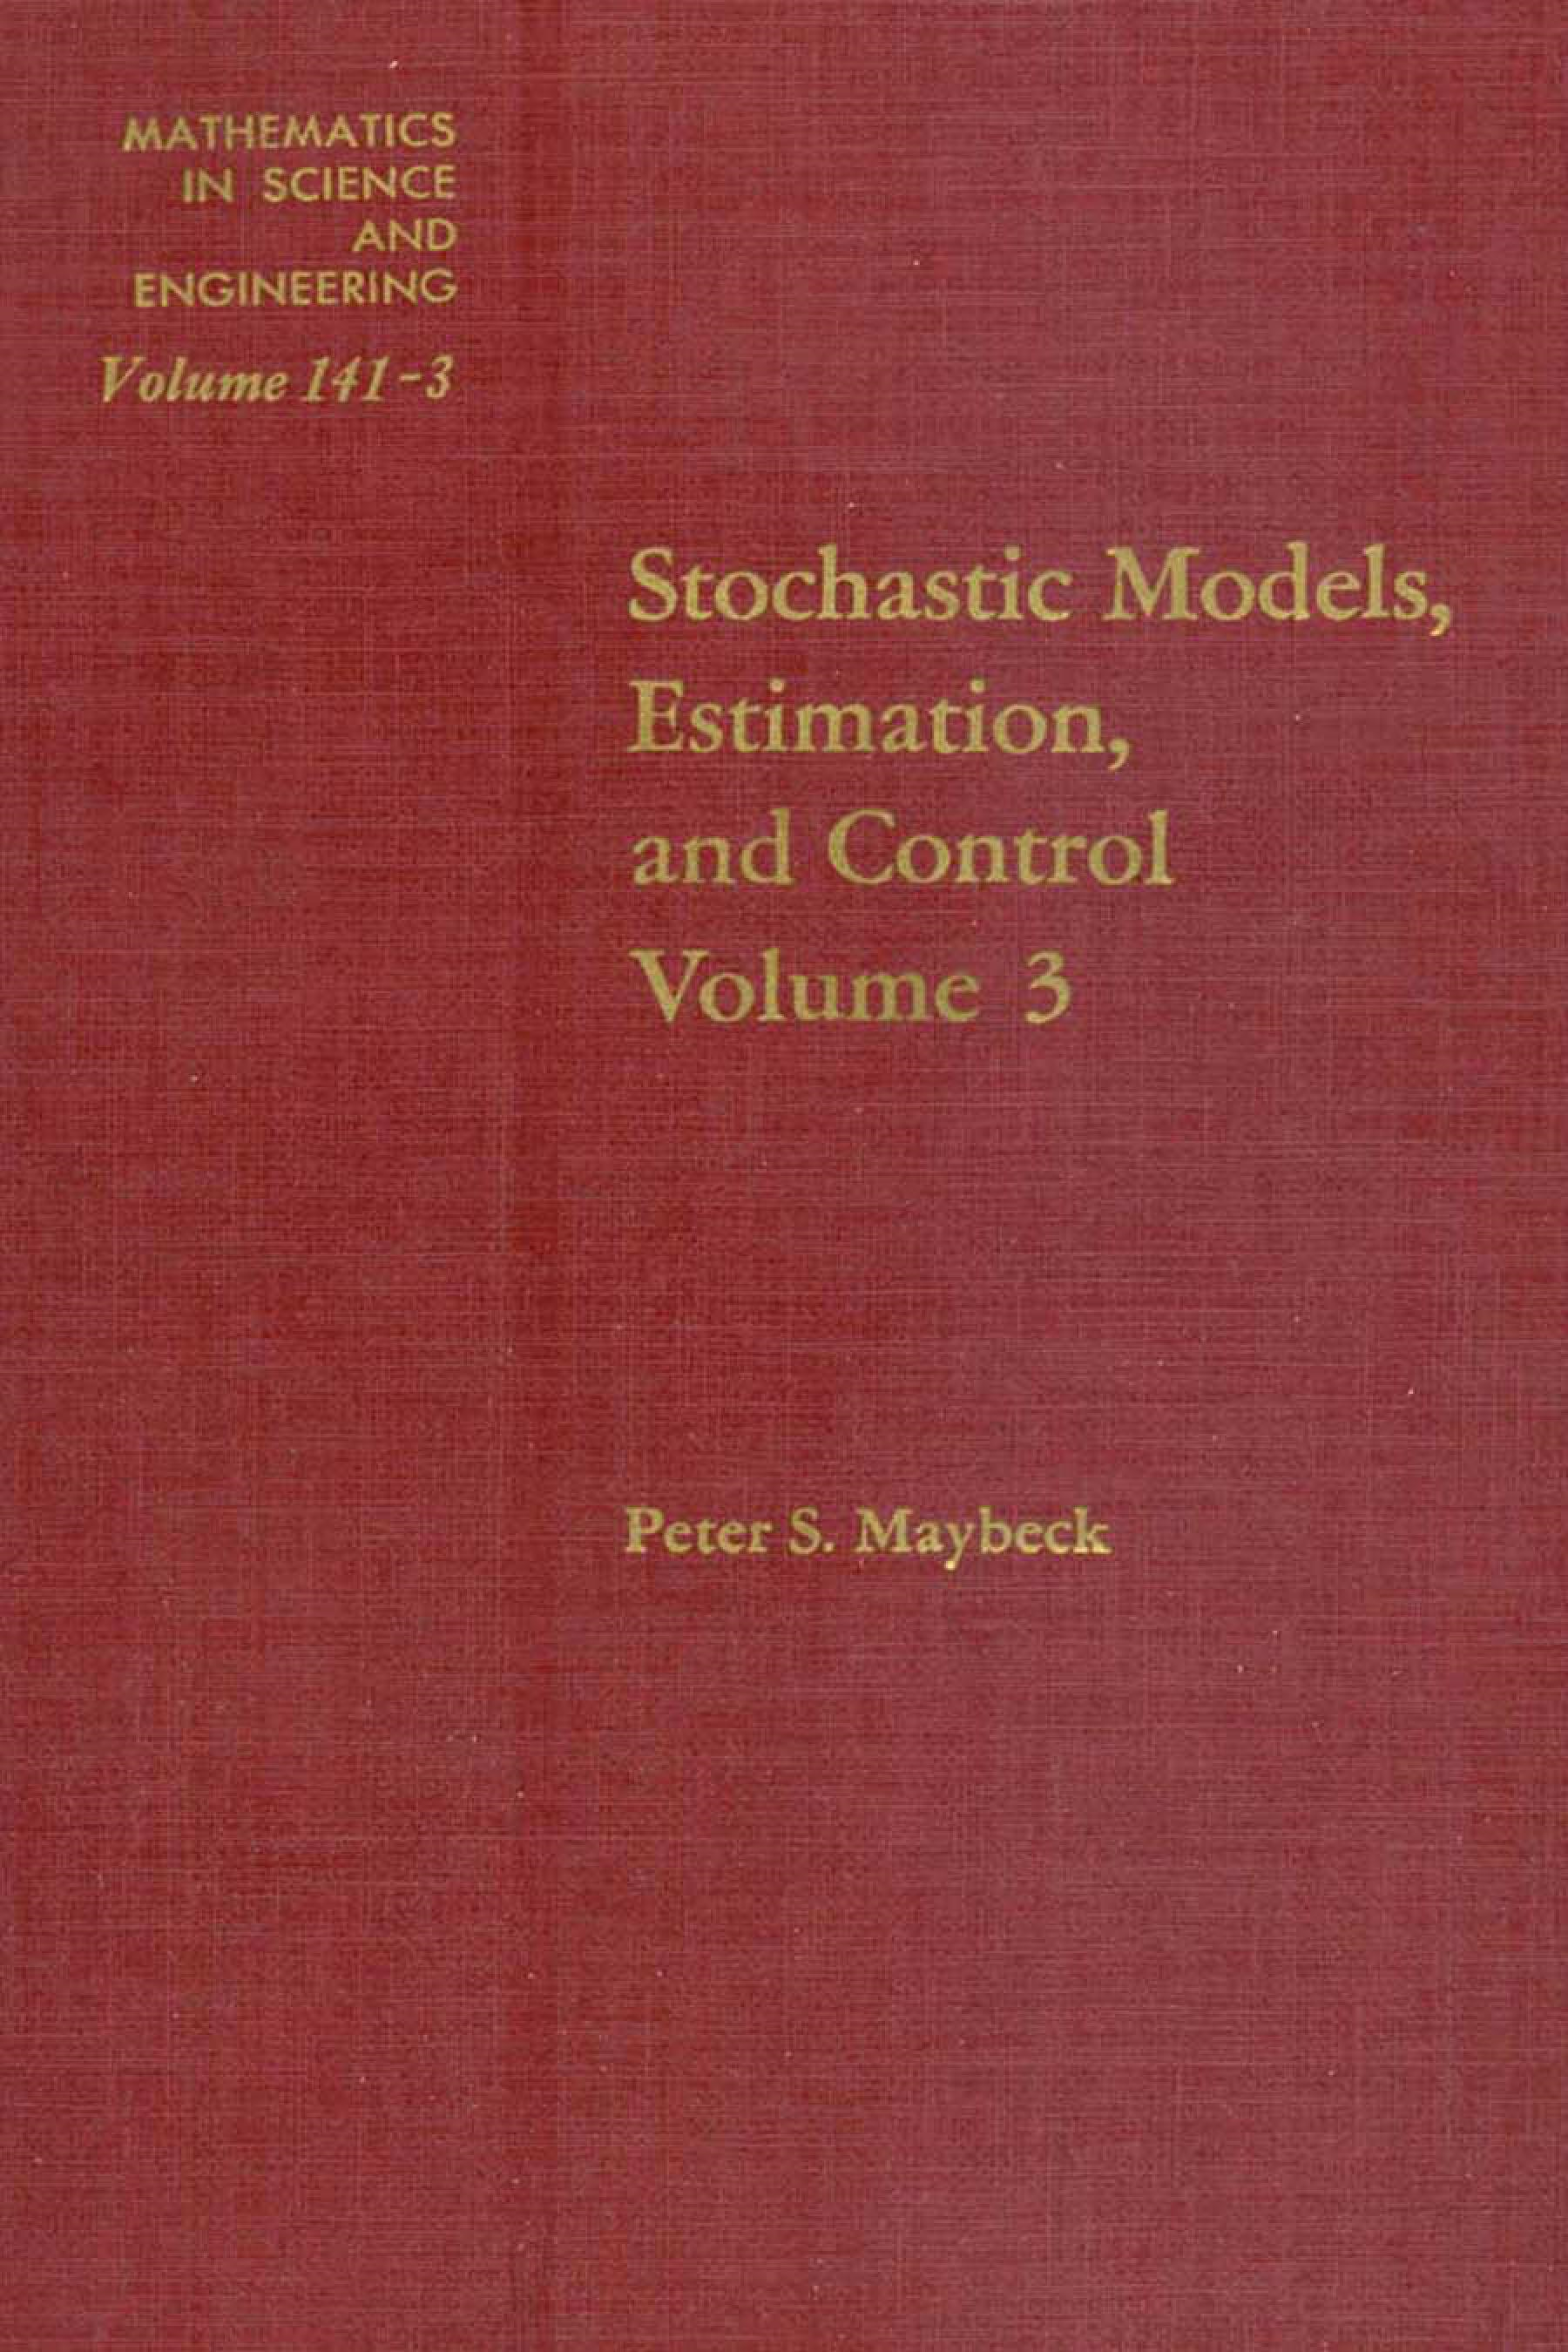 Stochastic Models, Estimation, and Control: Volume 3